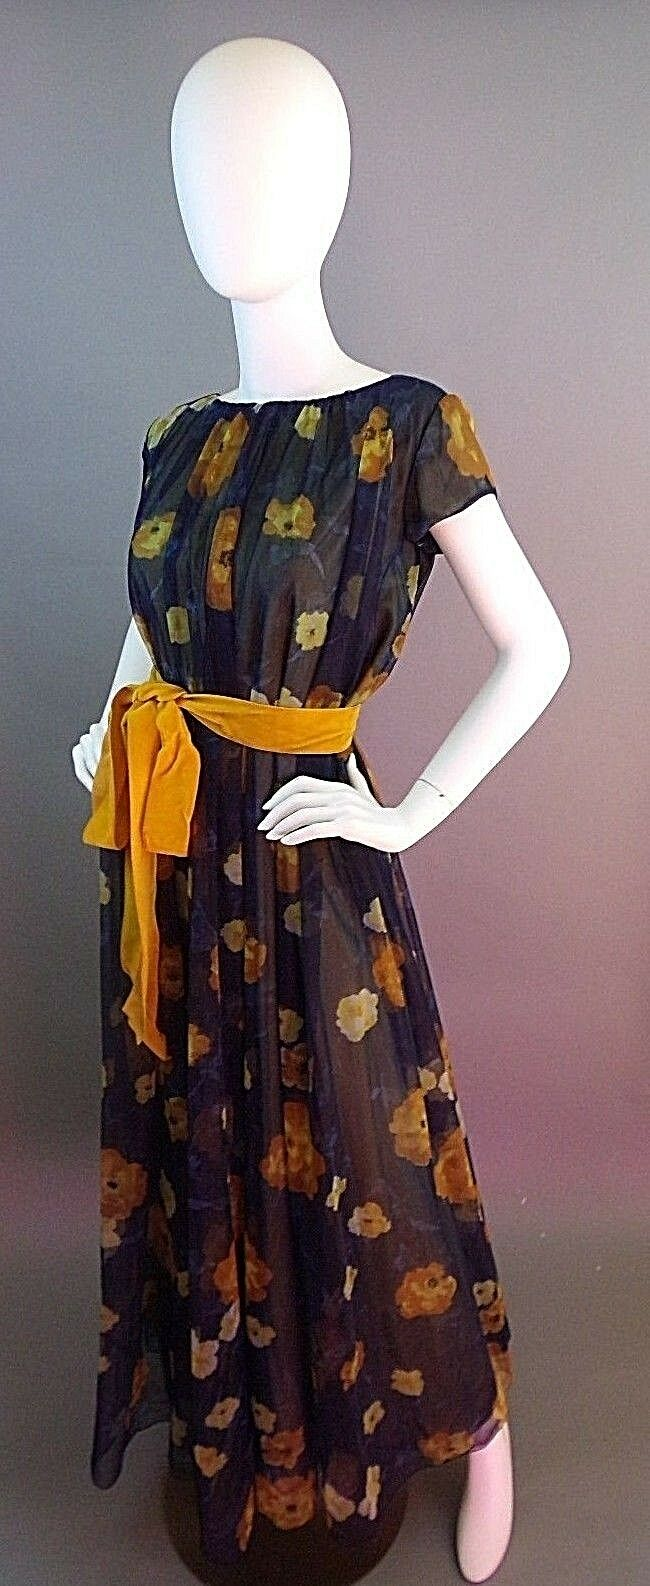 VINTAGE LUCIE ANN BEVERLY HILLS 1950s NIGHTGOWN - image 5